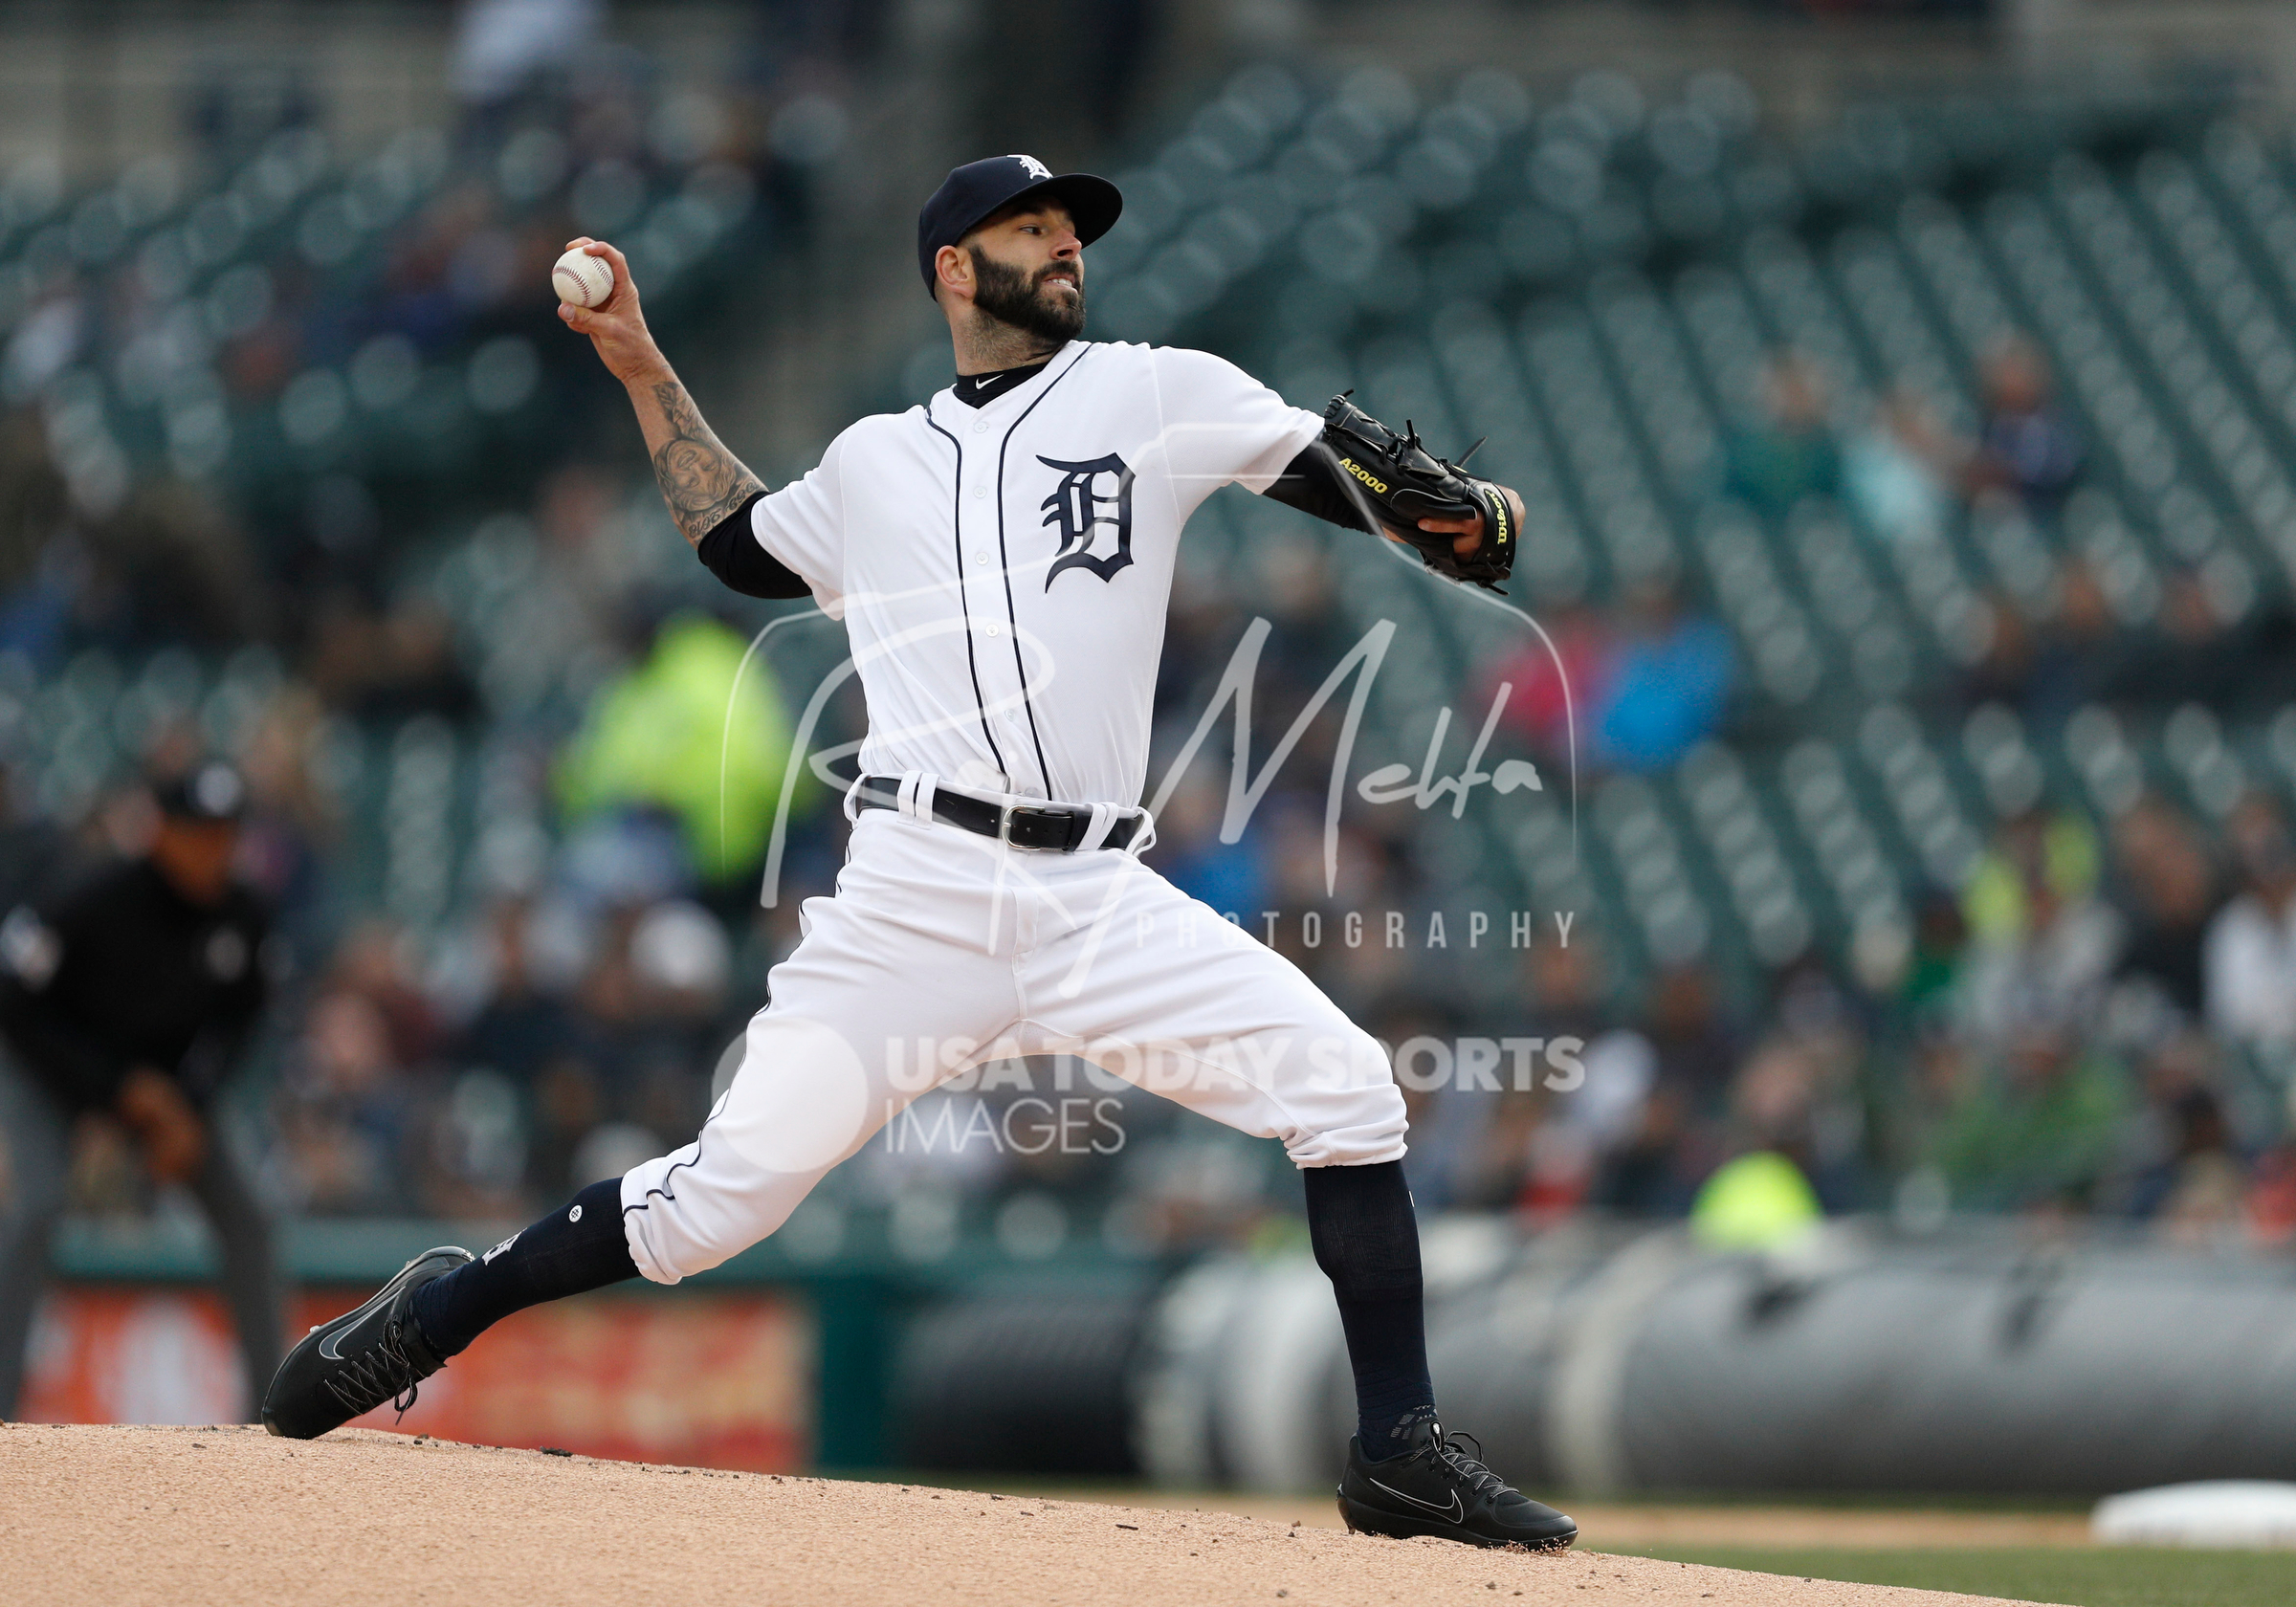 Apr 13, 2018; Detroit, MI, USA; Detroit Tigers starting pitcher Mike Fiers (44) pitches the ball during the first inning against the New York Yankees at Comerica Park. Mandatory Credit: Raj Mehta-USA TODAY Sports